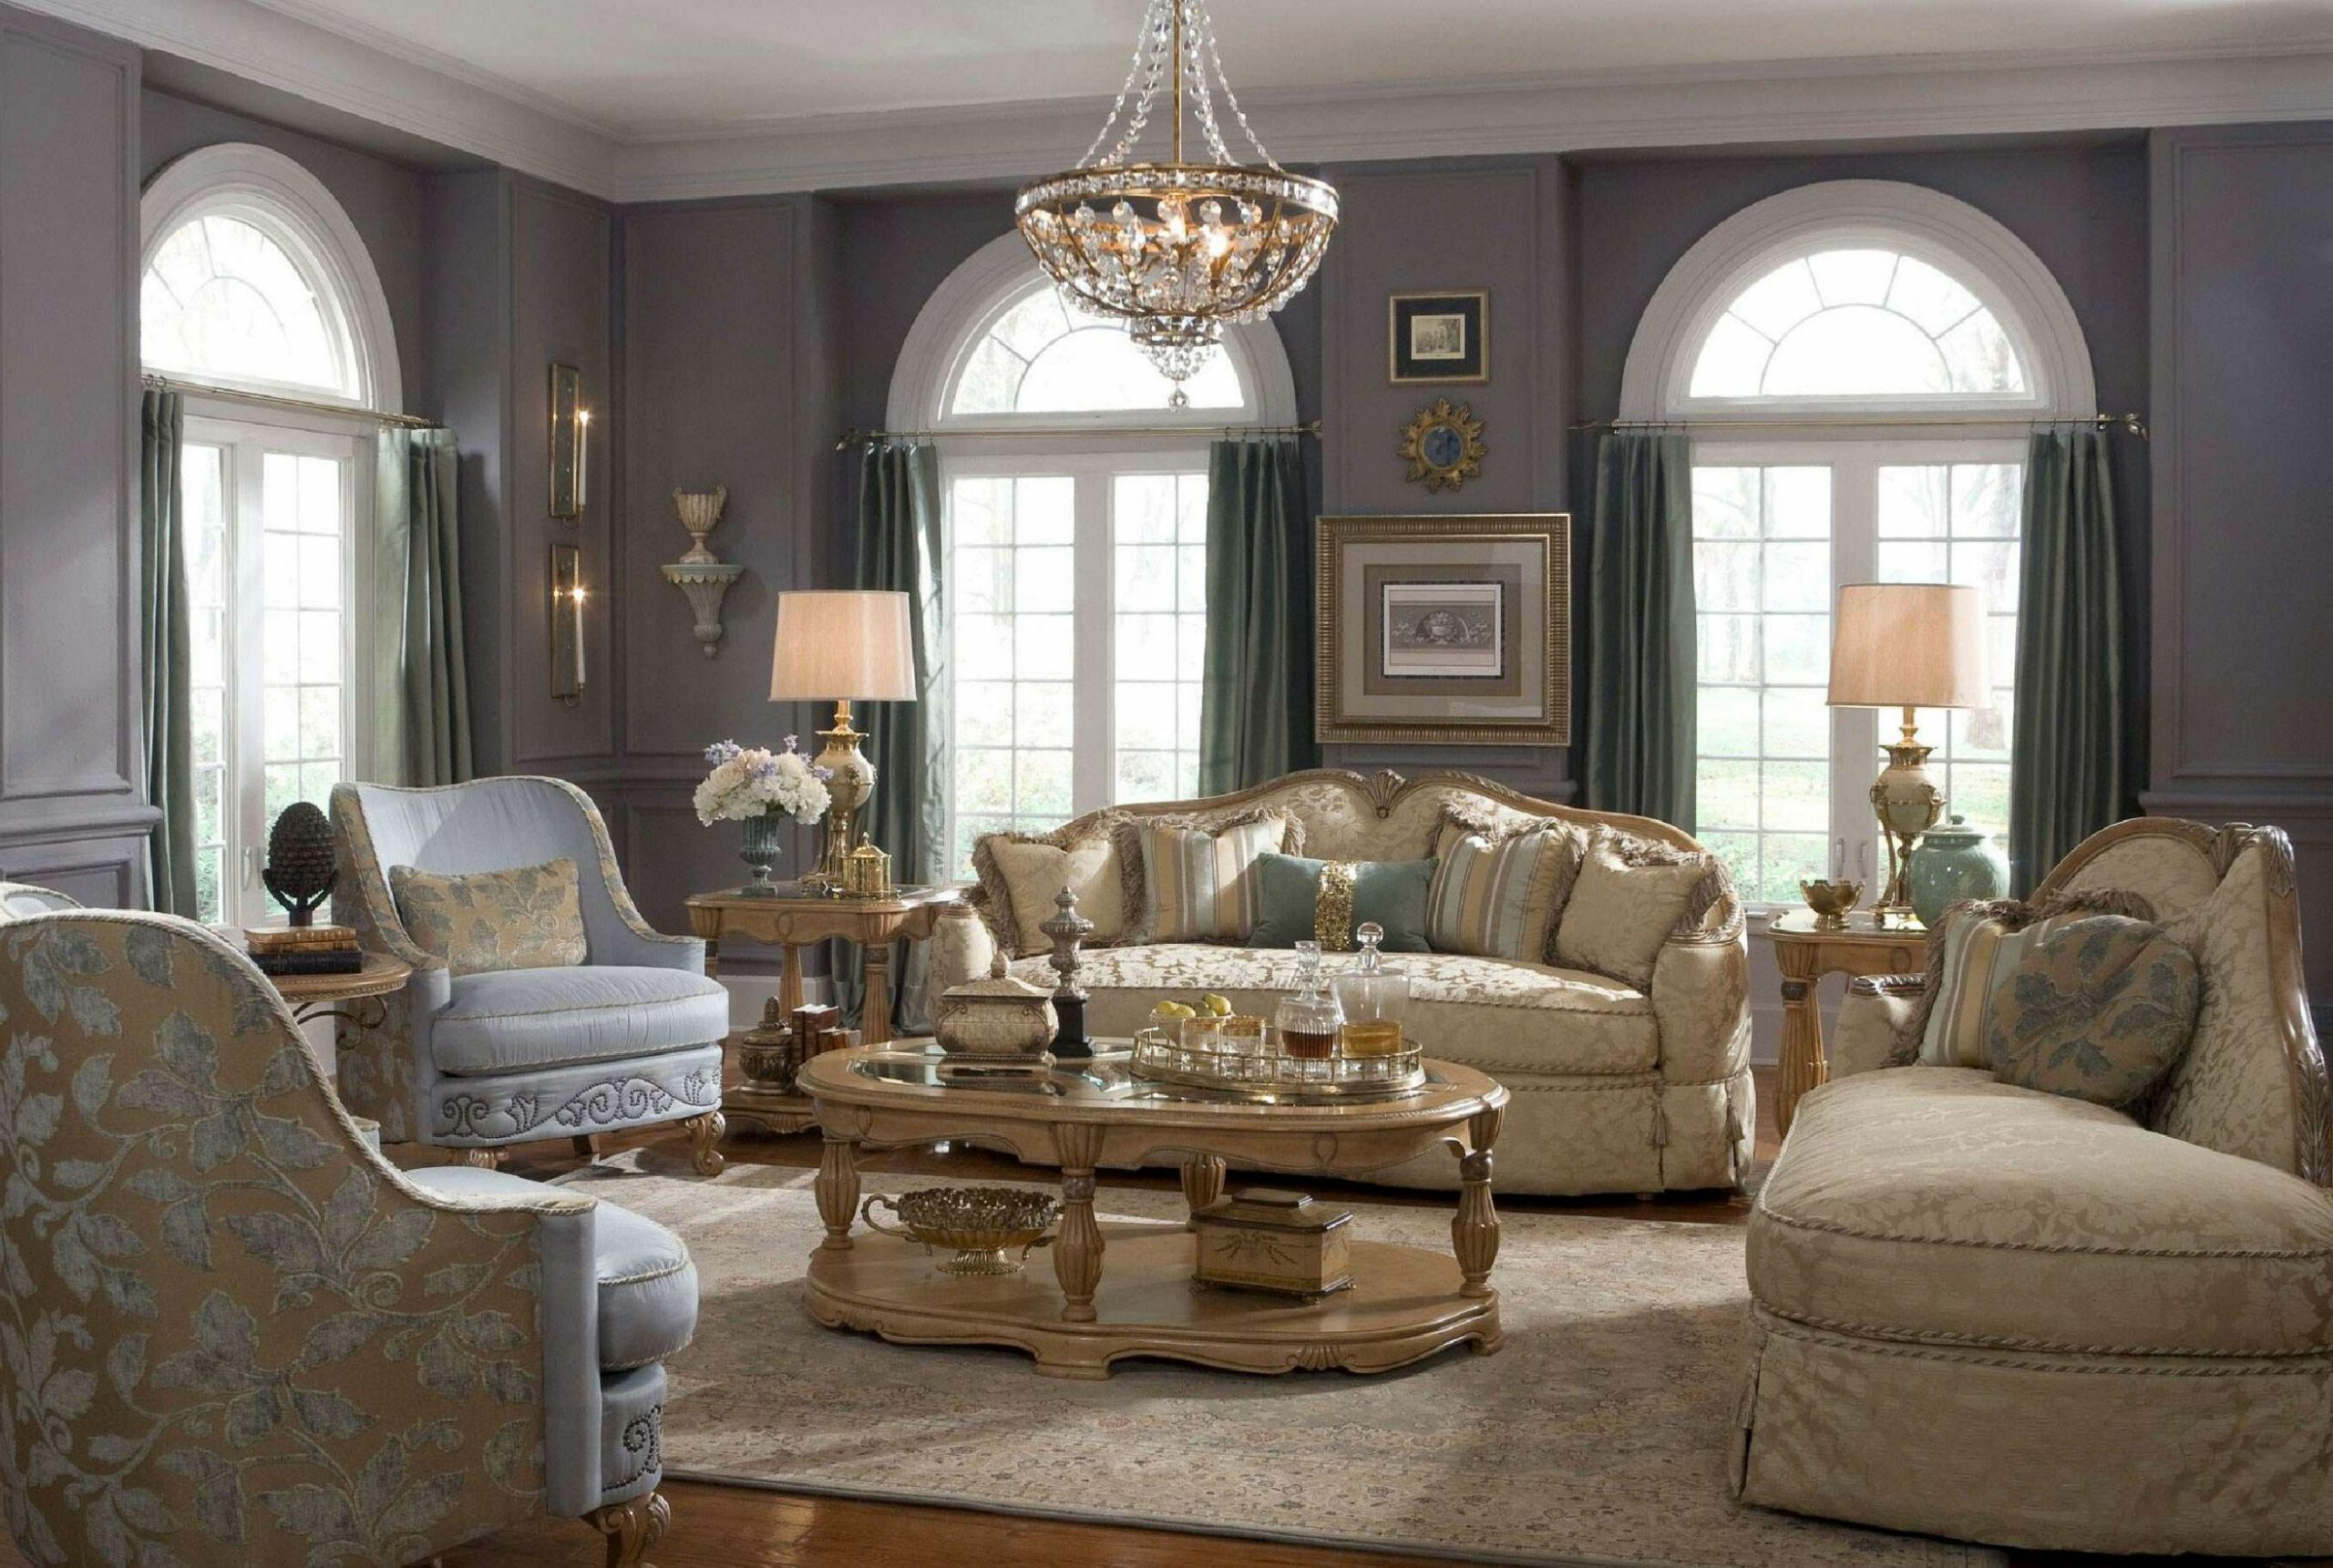 Interior Design Gallery: Decorating Your Home